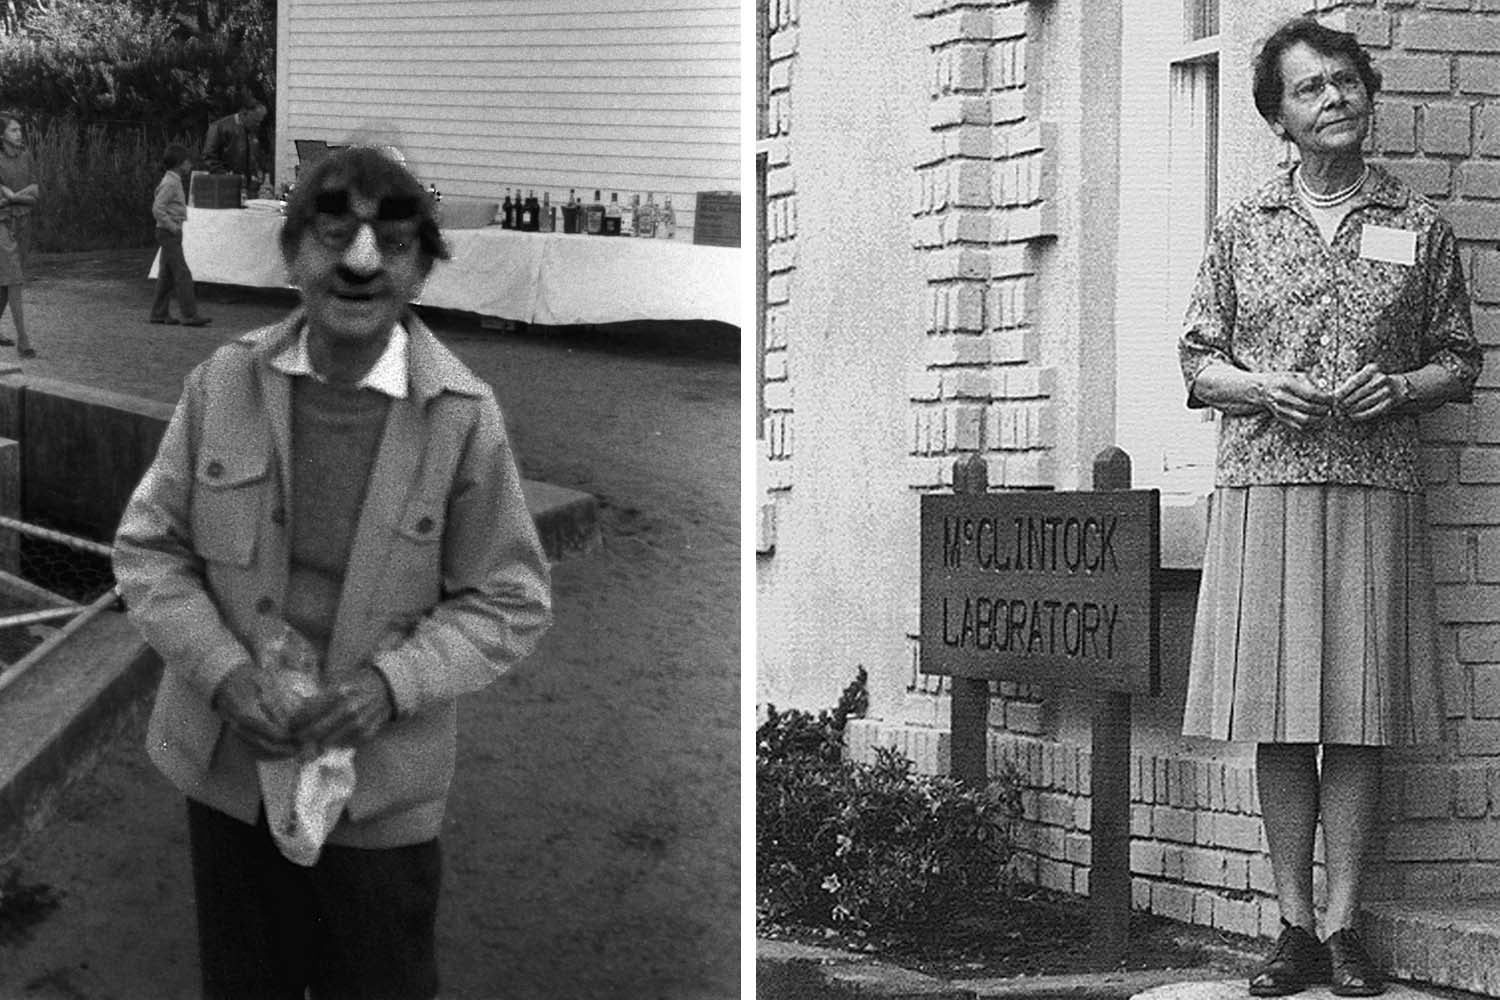 photos of Barbara McClintock as Groucho and standing in front of McClintock Laboratory